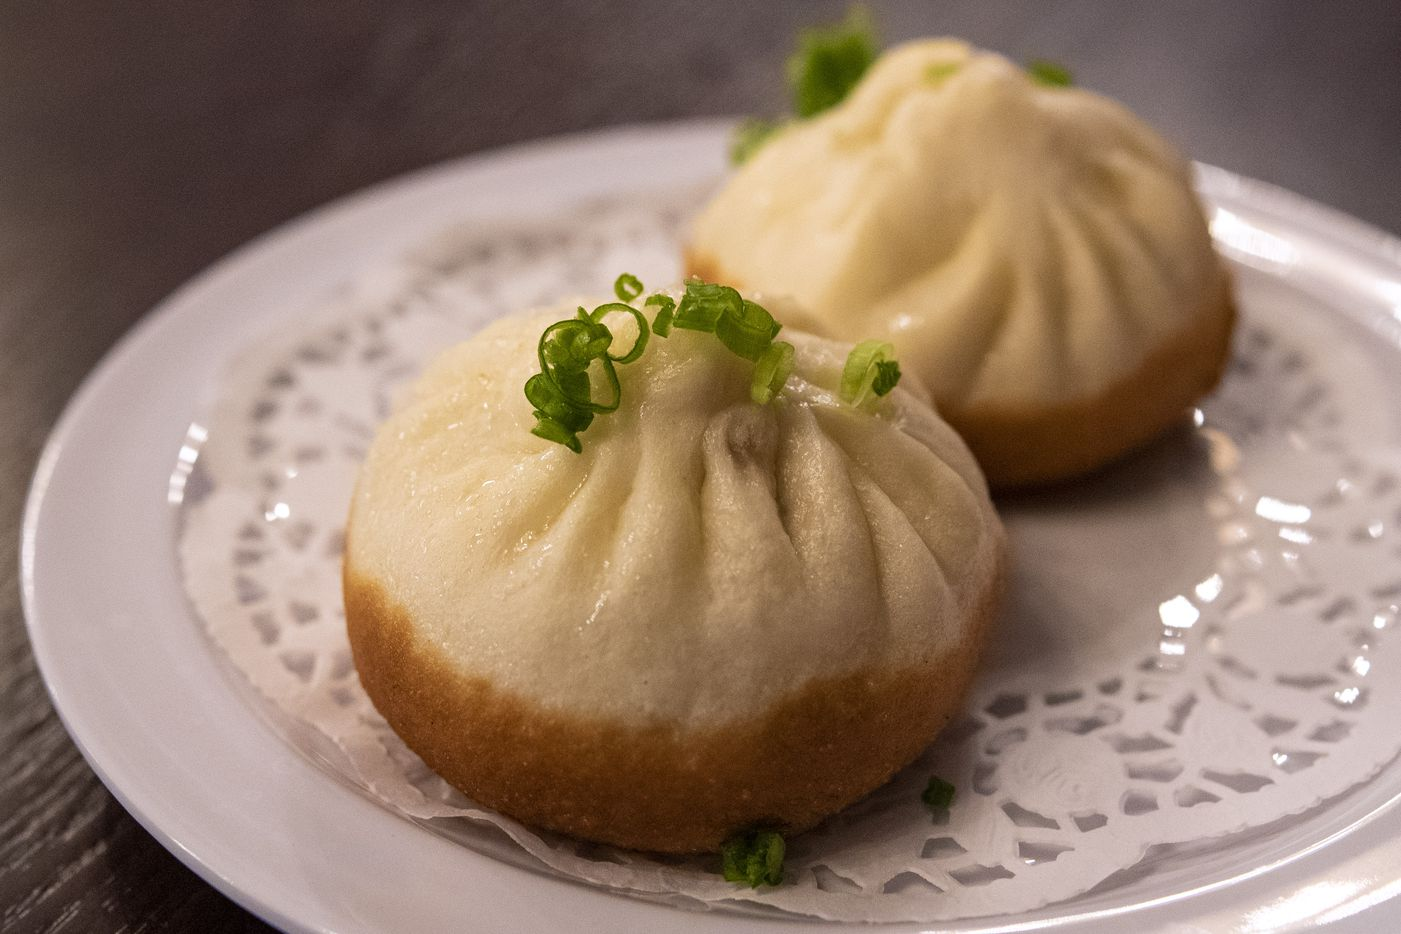 A bun dumpling with pork and scallions from Kitchen Master in Frisco, Sunday, May 31, 2020.